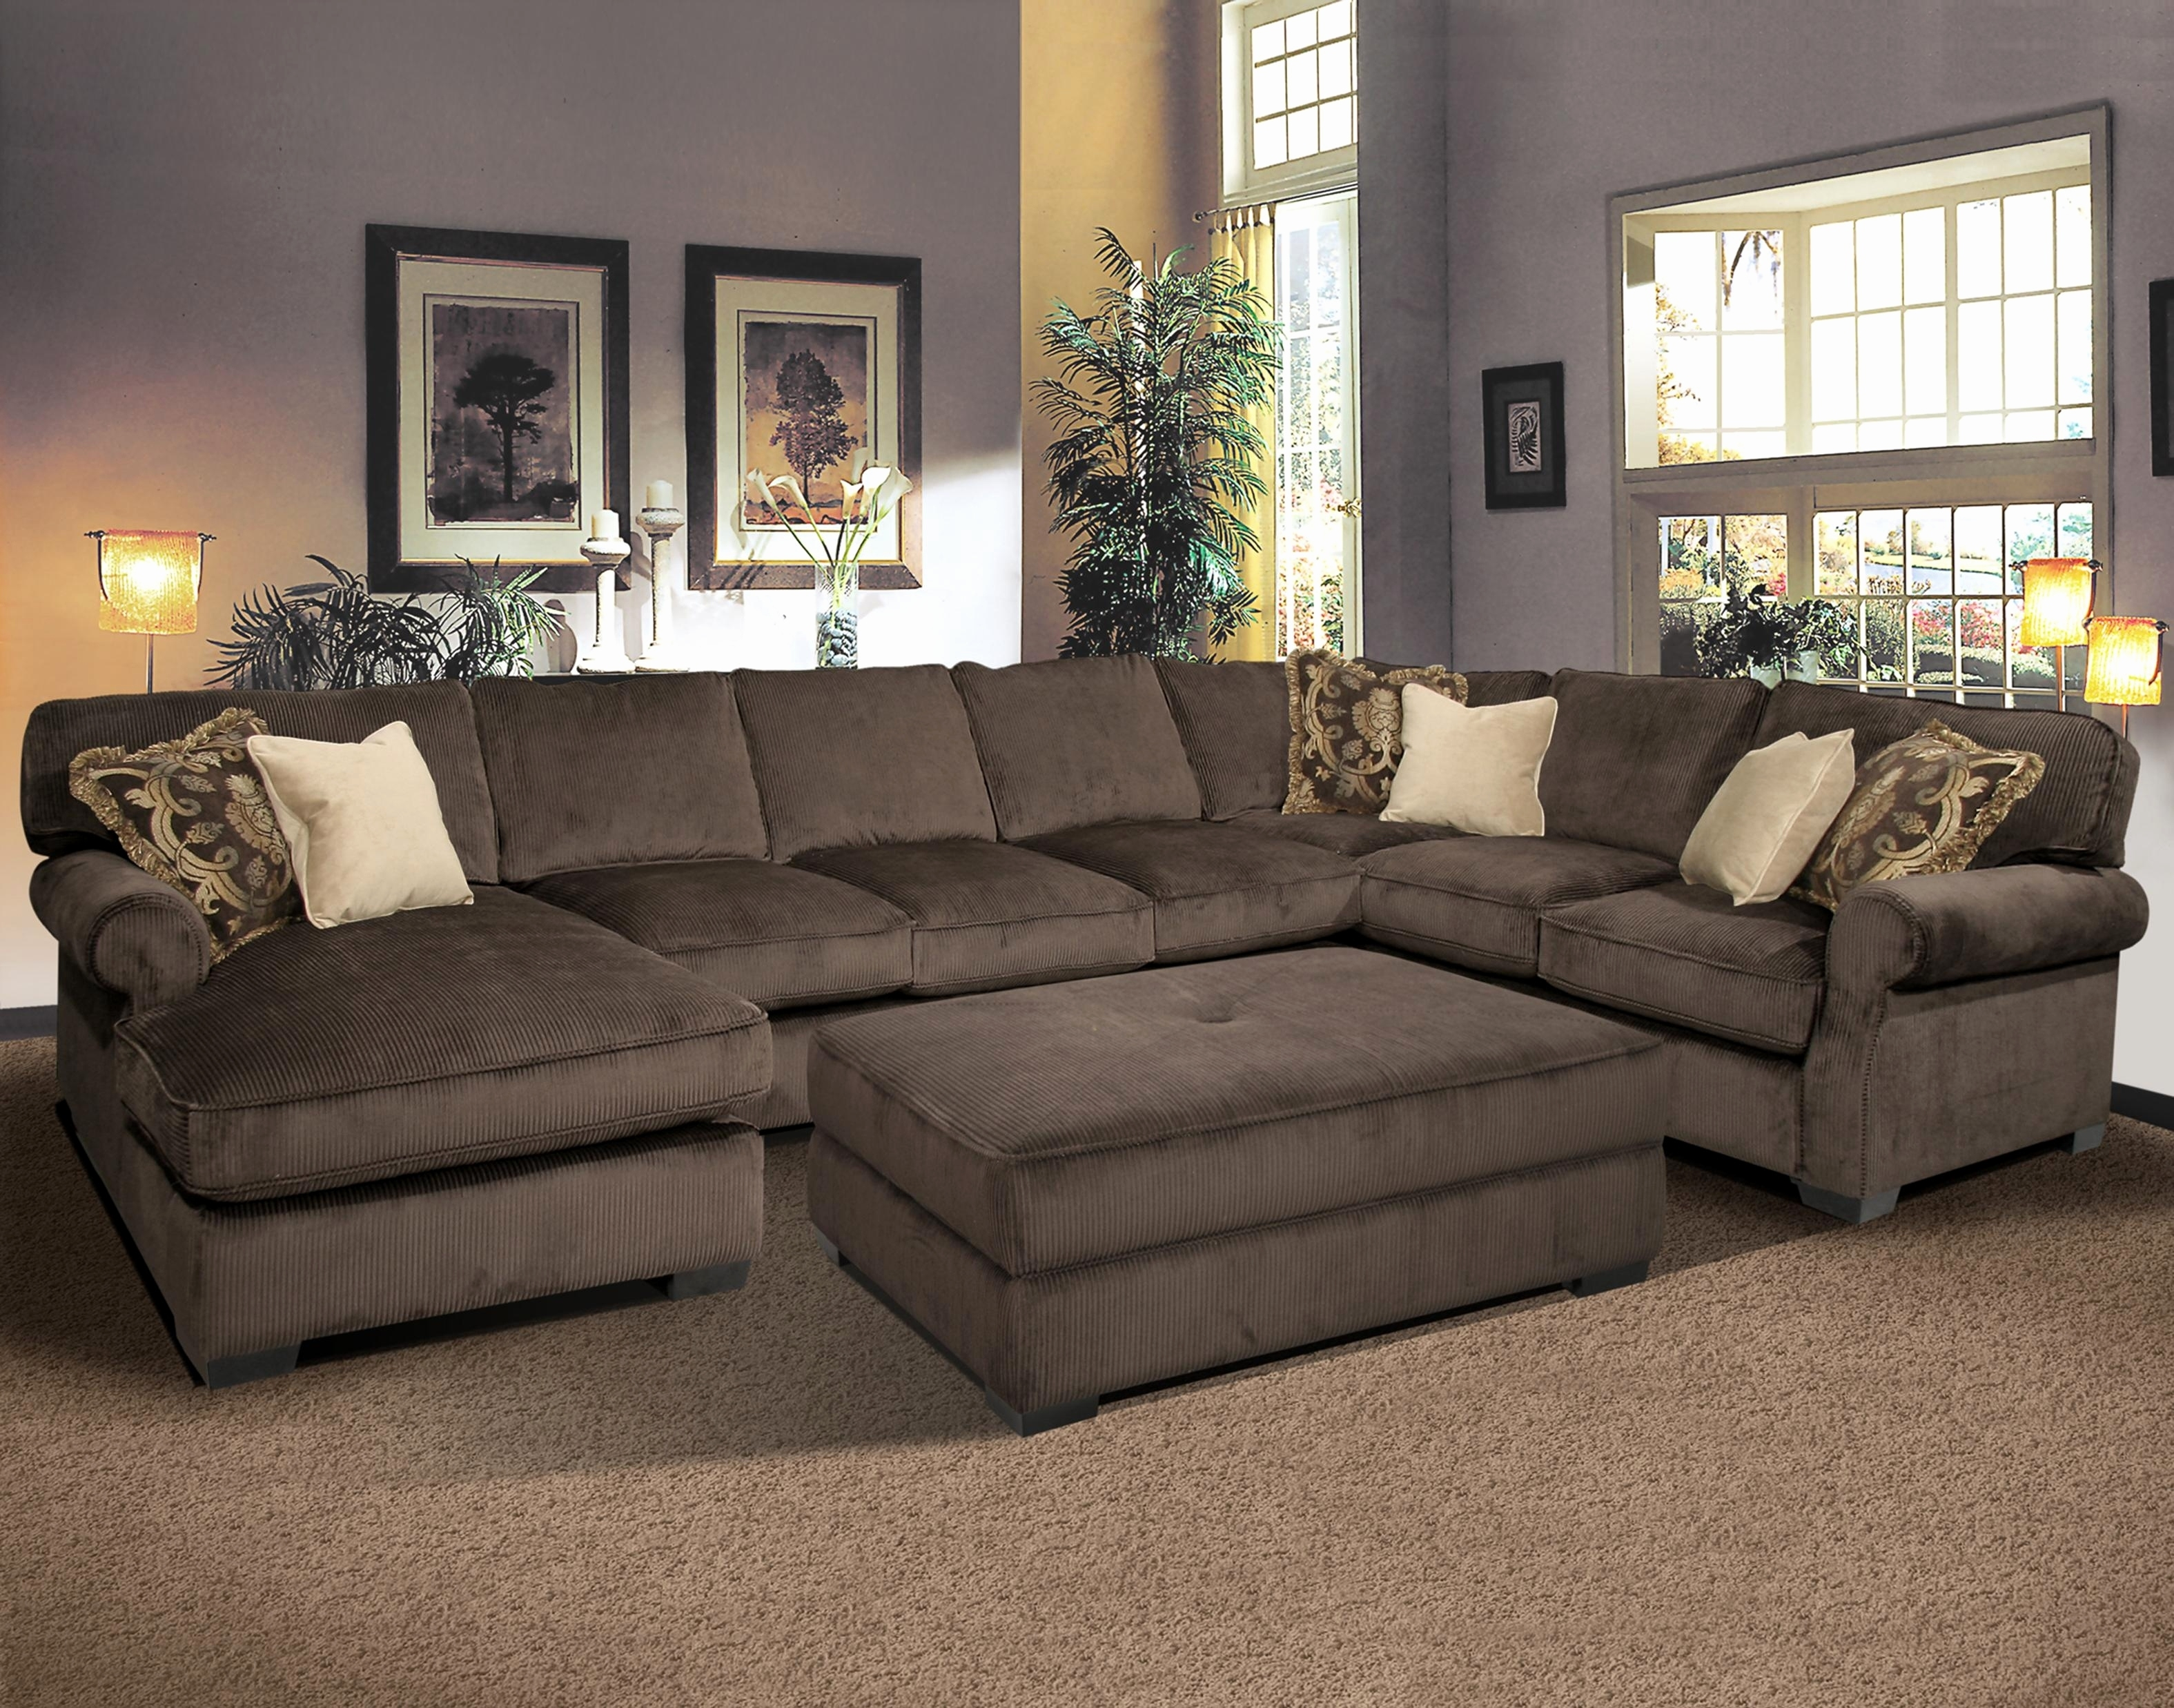 Awesome Extra Deep Sofa 2018 – Couches And Sofas Ideas With Regard To Deep Cushion Sofas (Image 1 of 10)